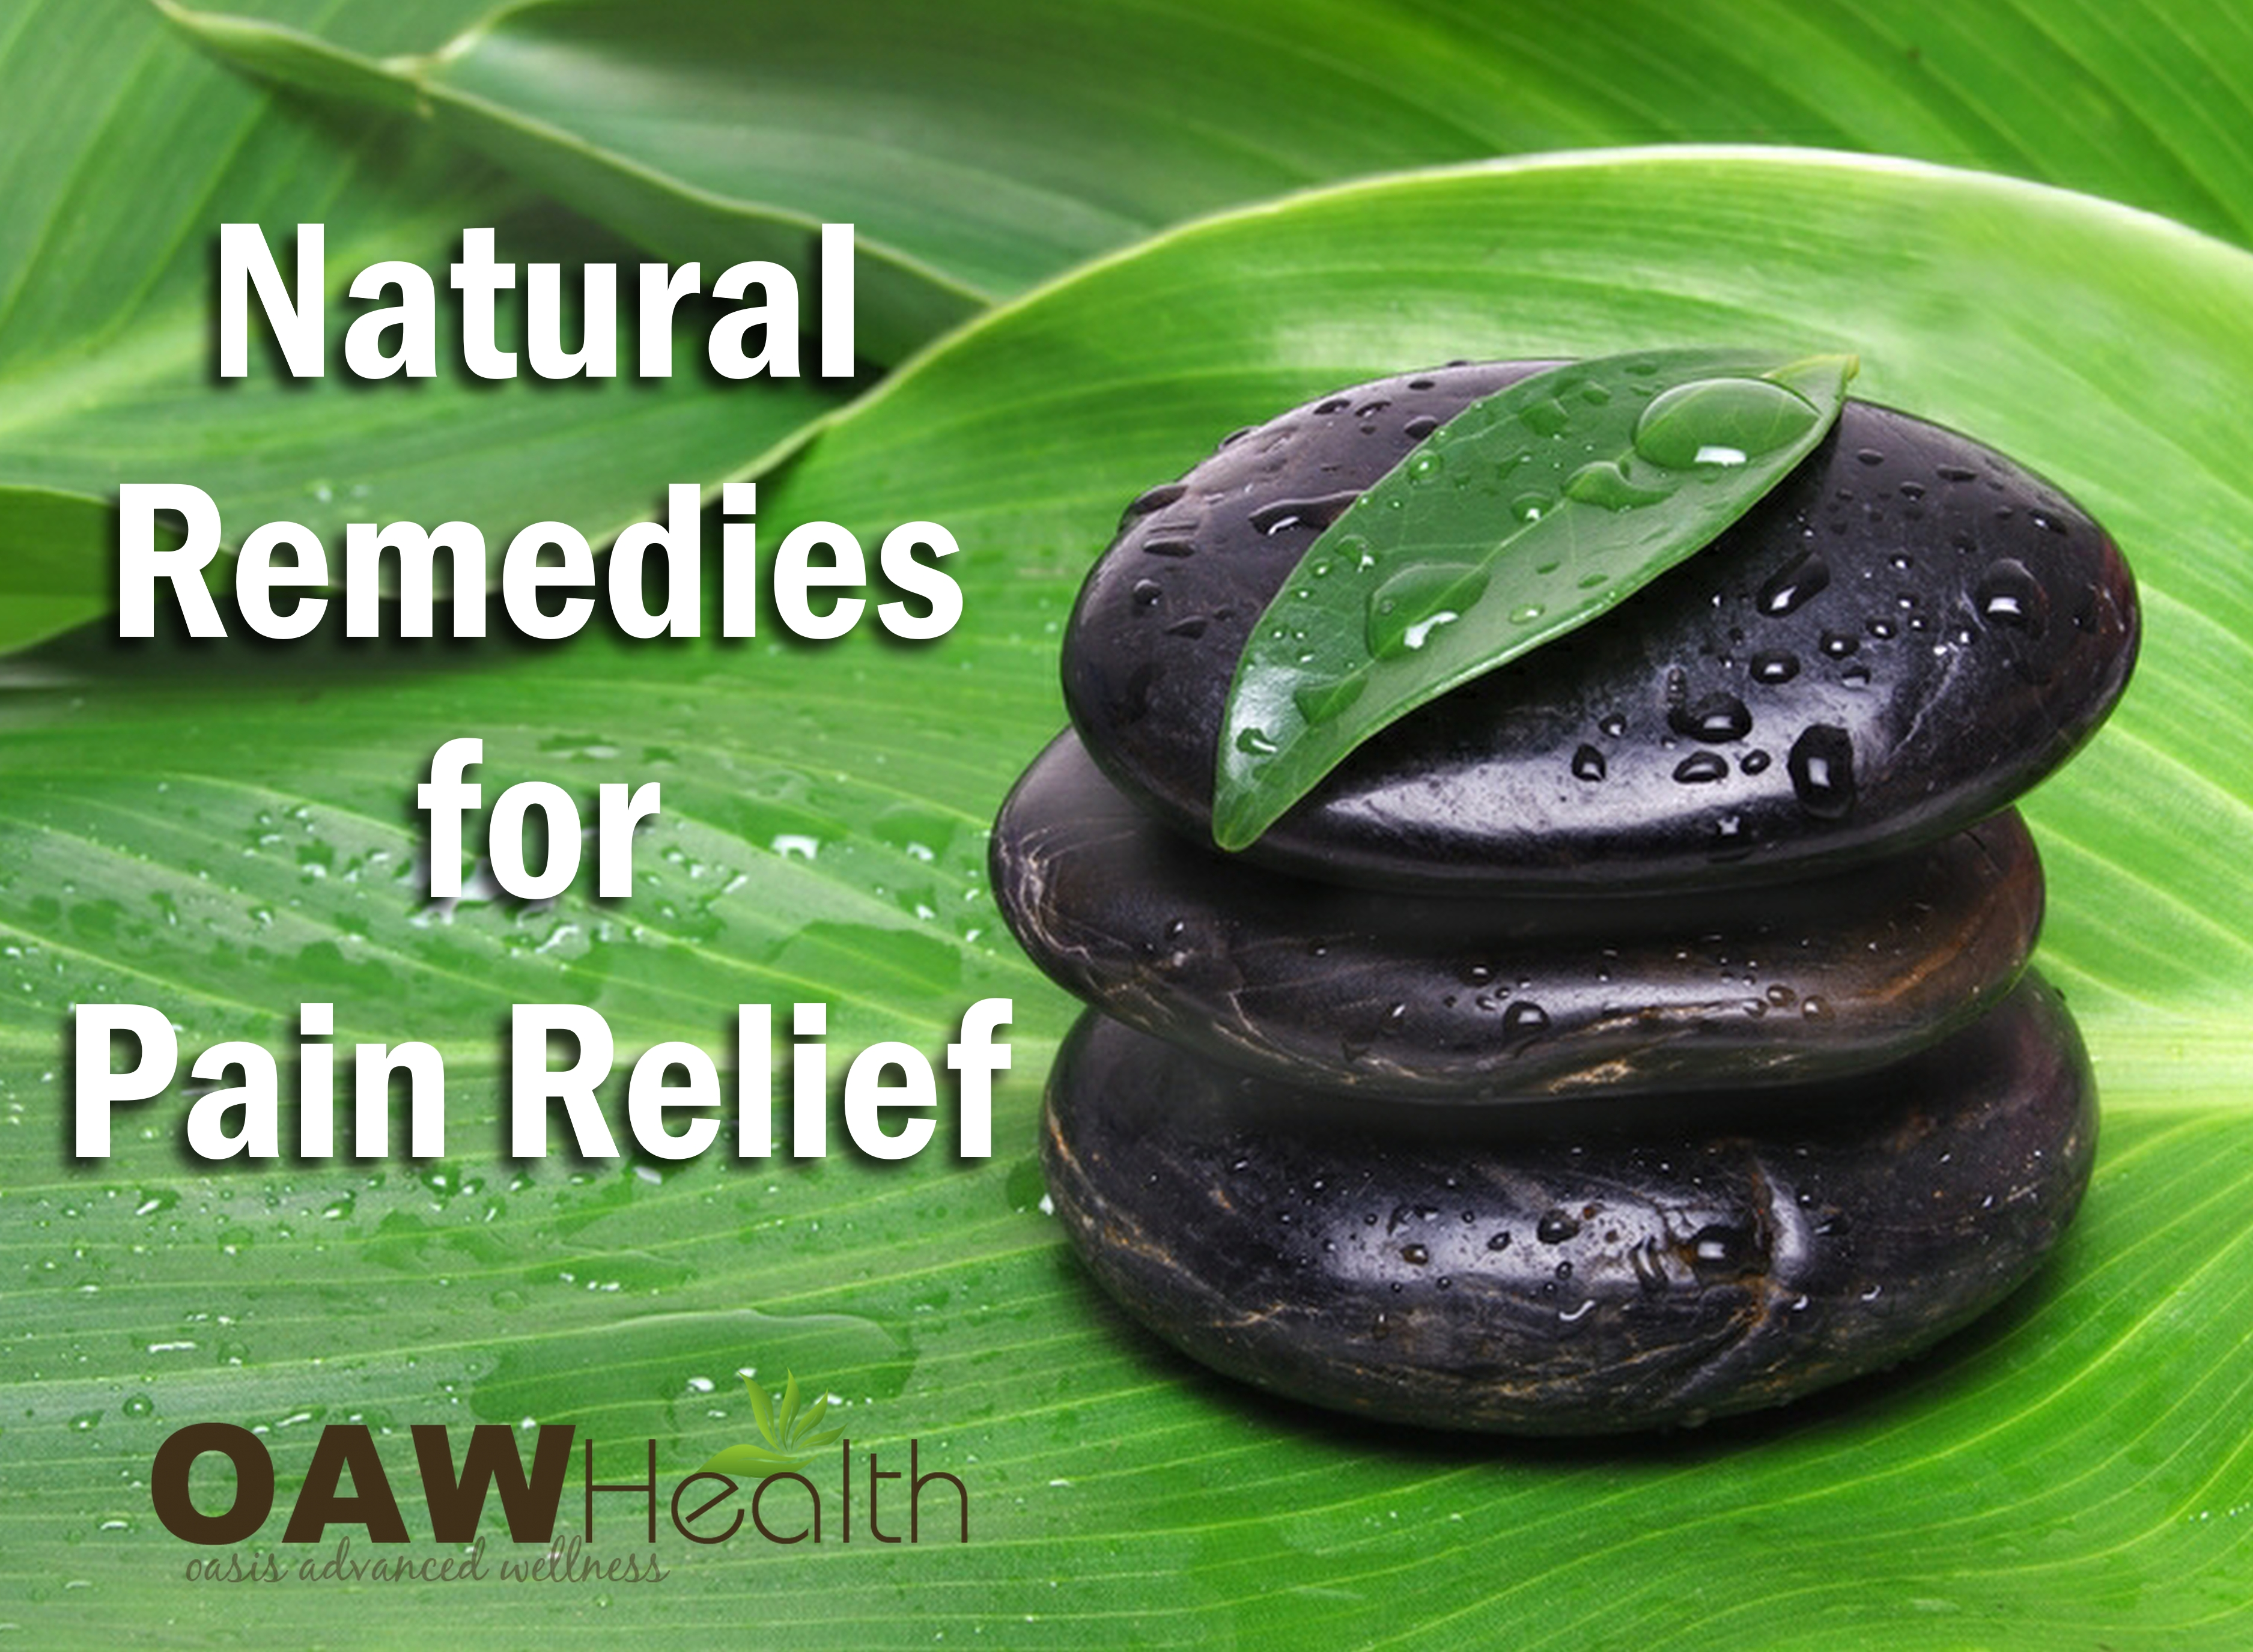 Natural Remedies for Pain Relief